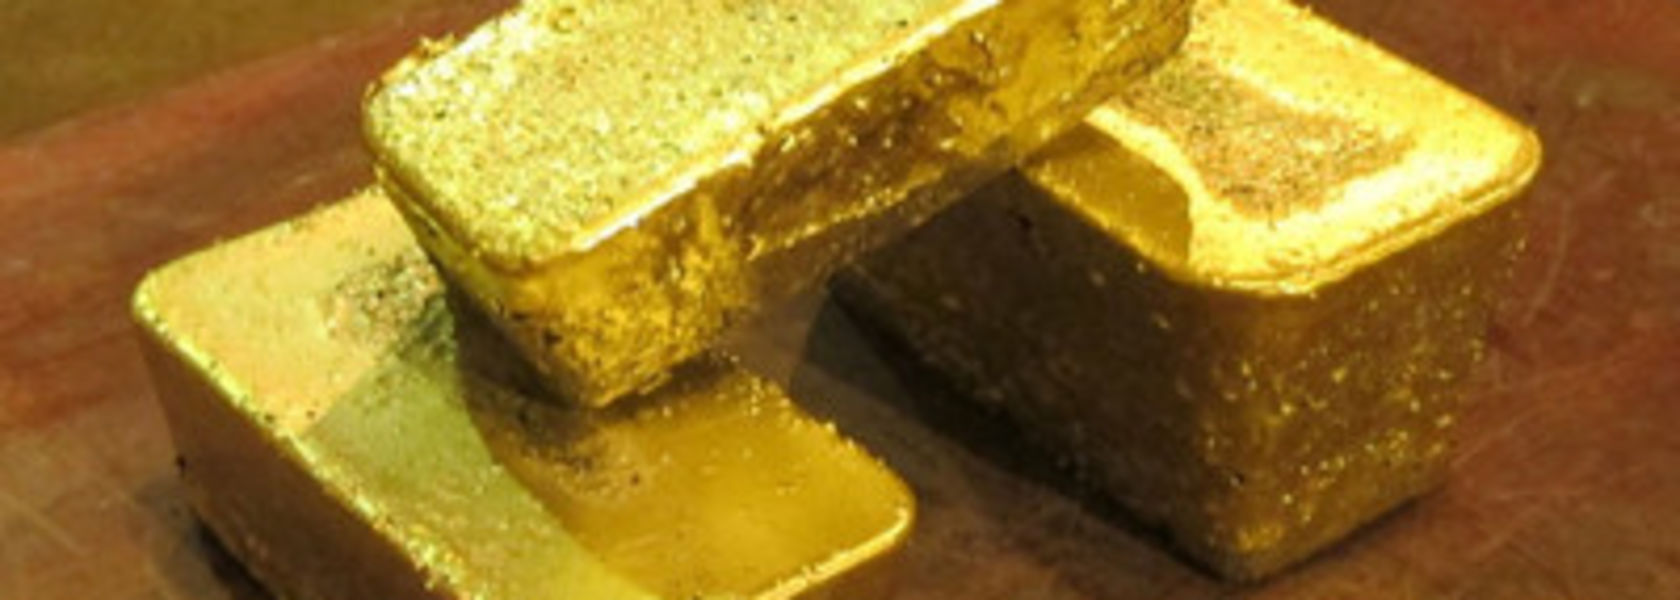 Castle Mountain marks first gold pour